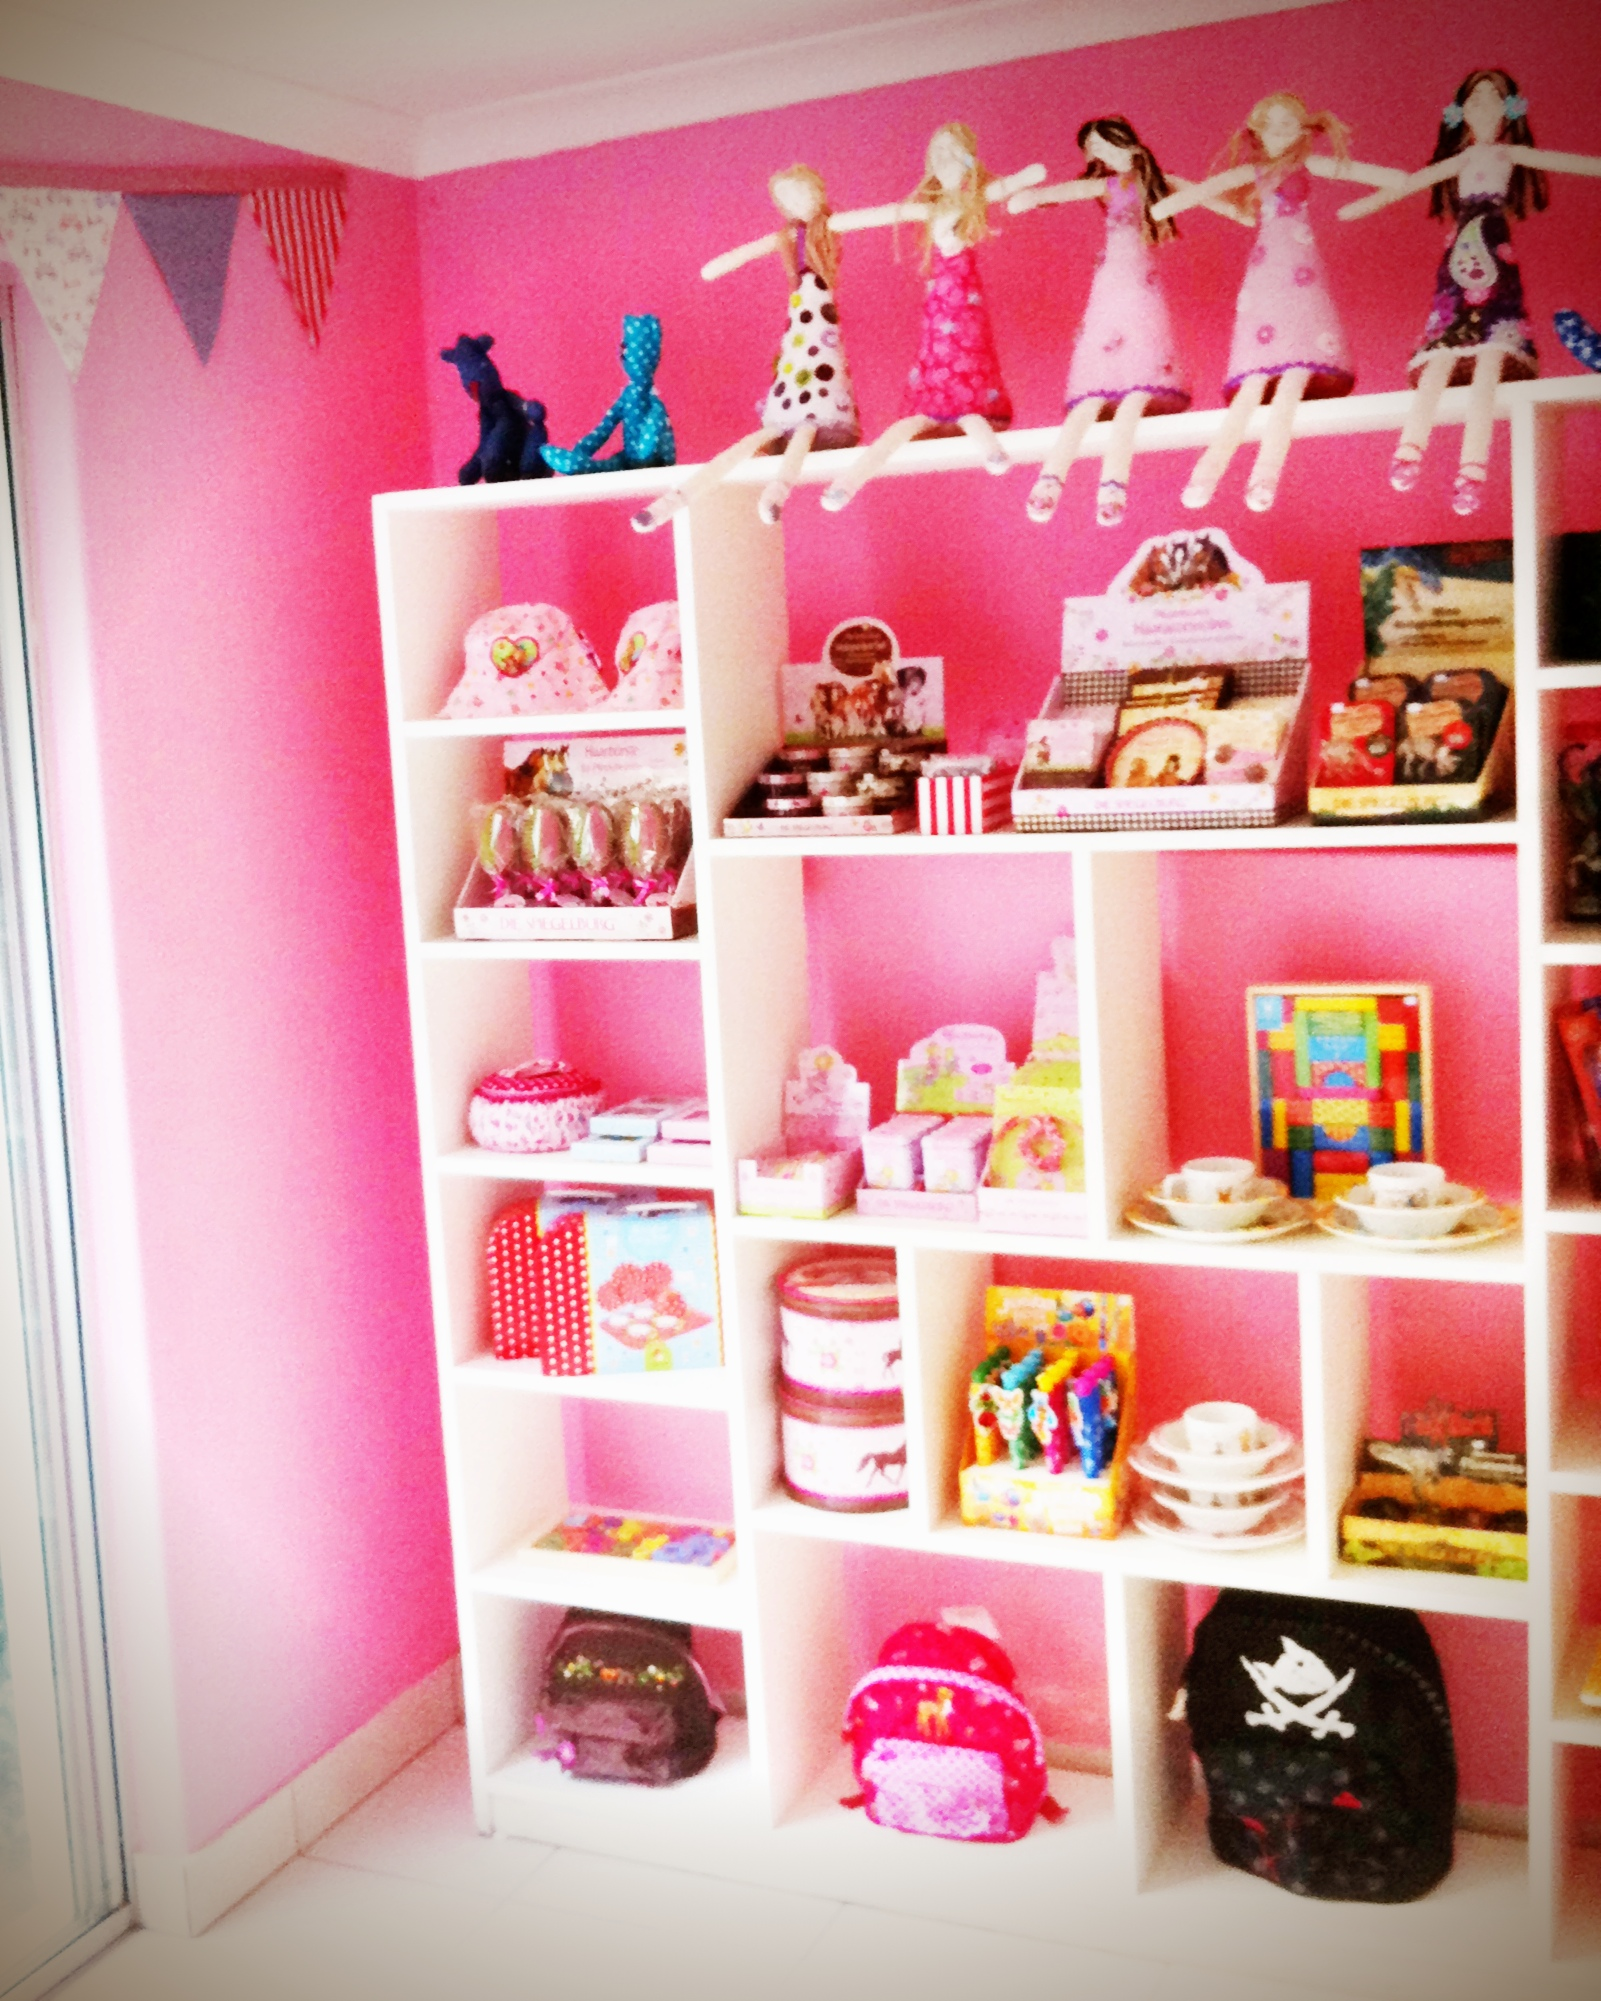 Pirate Bedroom Accessories Snip Snap One Of The Boys